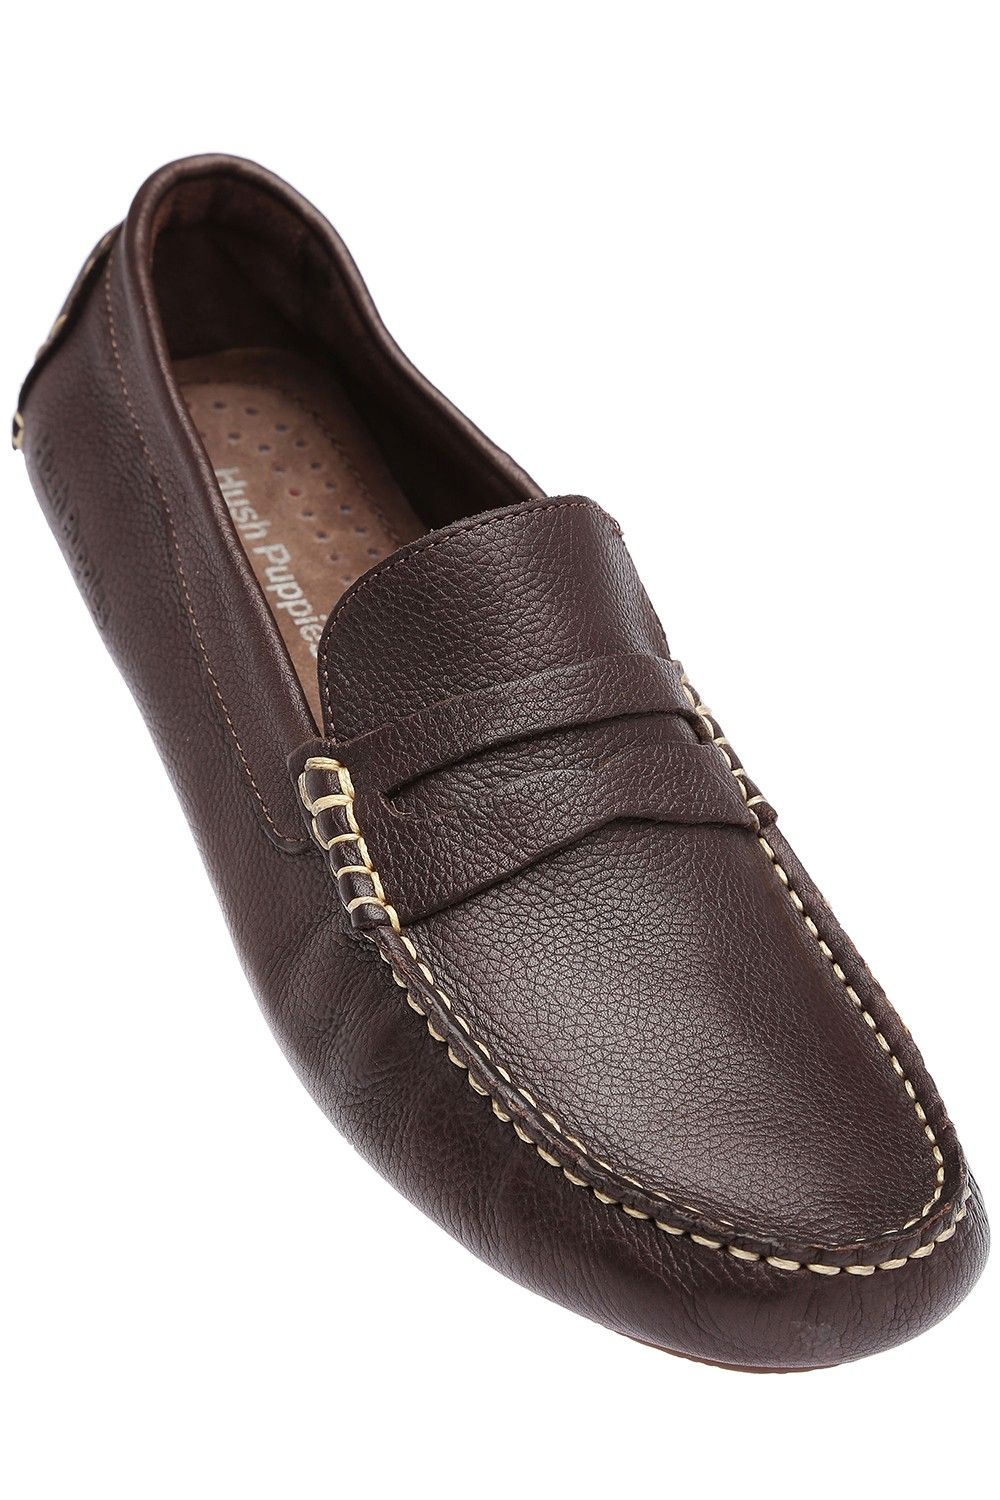 HUSH PUPPIES Mens Brown Leather Casual Slipon Shoe, S